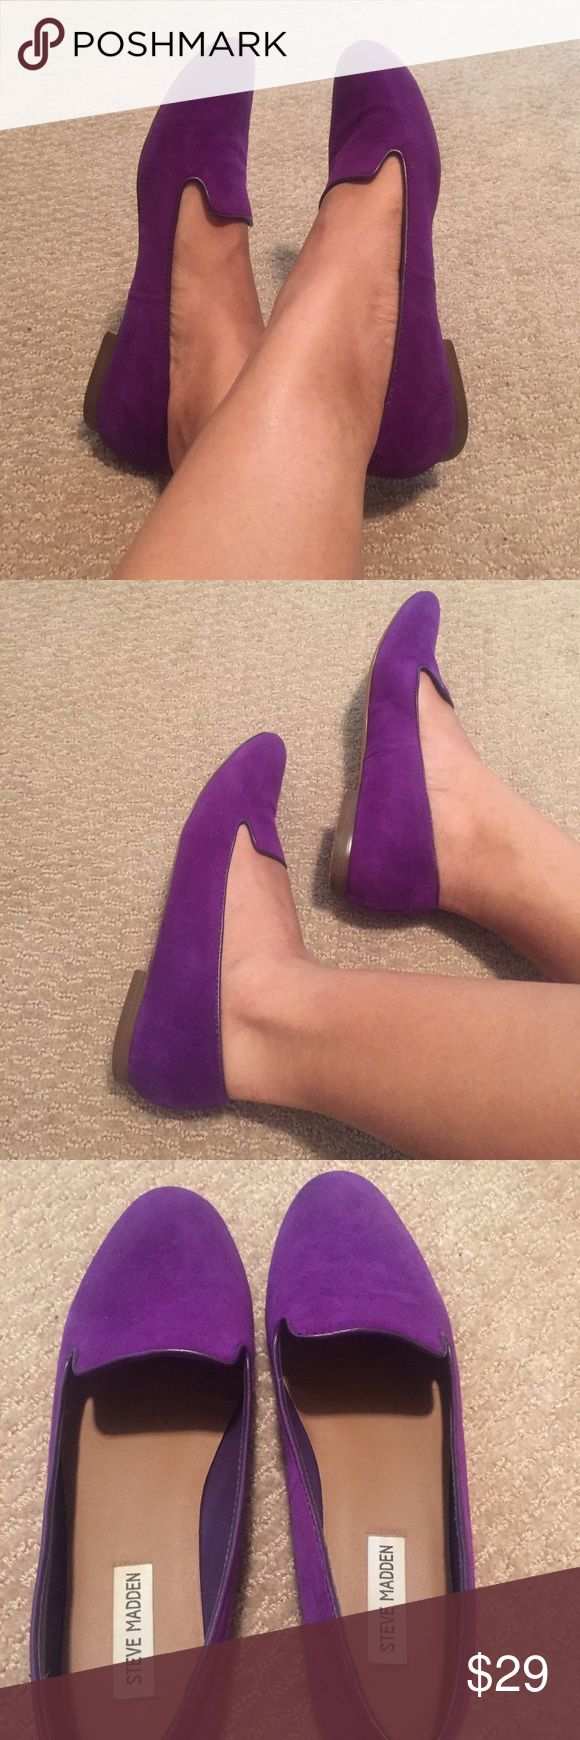 Steve Madden Loafers Classic loafer in purple suede - the perfect pop of color for the office or casual day out and about! / No box included. / Excellent used condition. Steve Madden Shoes Flats & Loafers